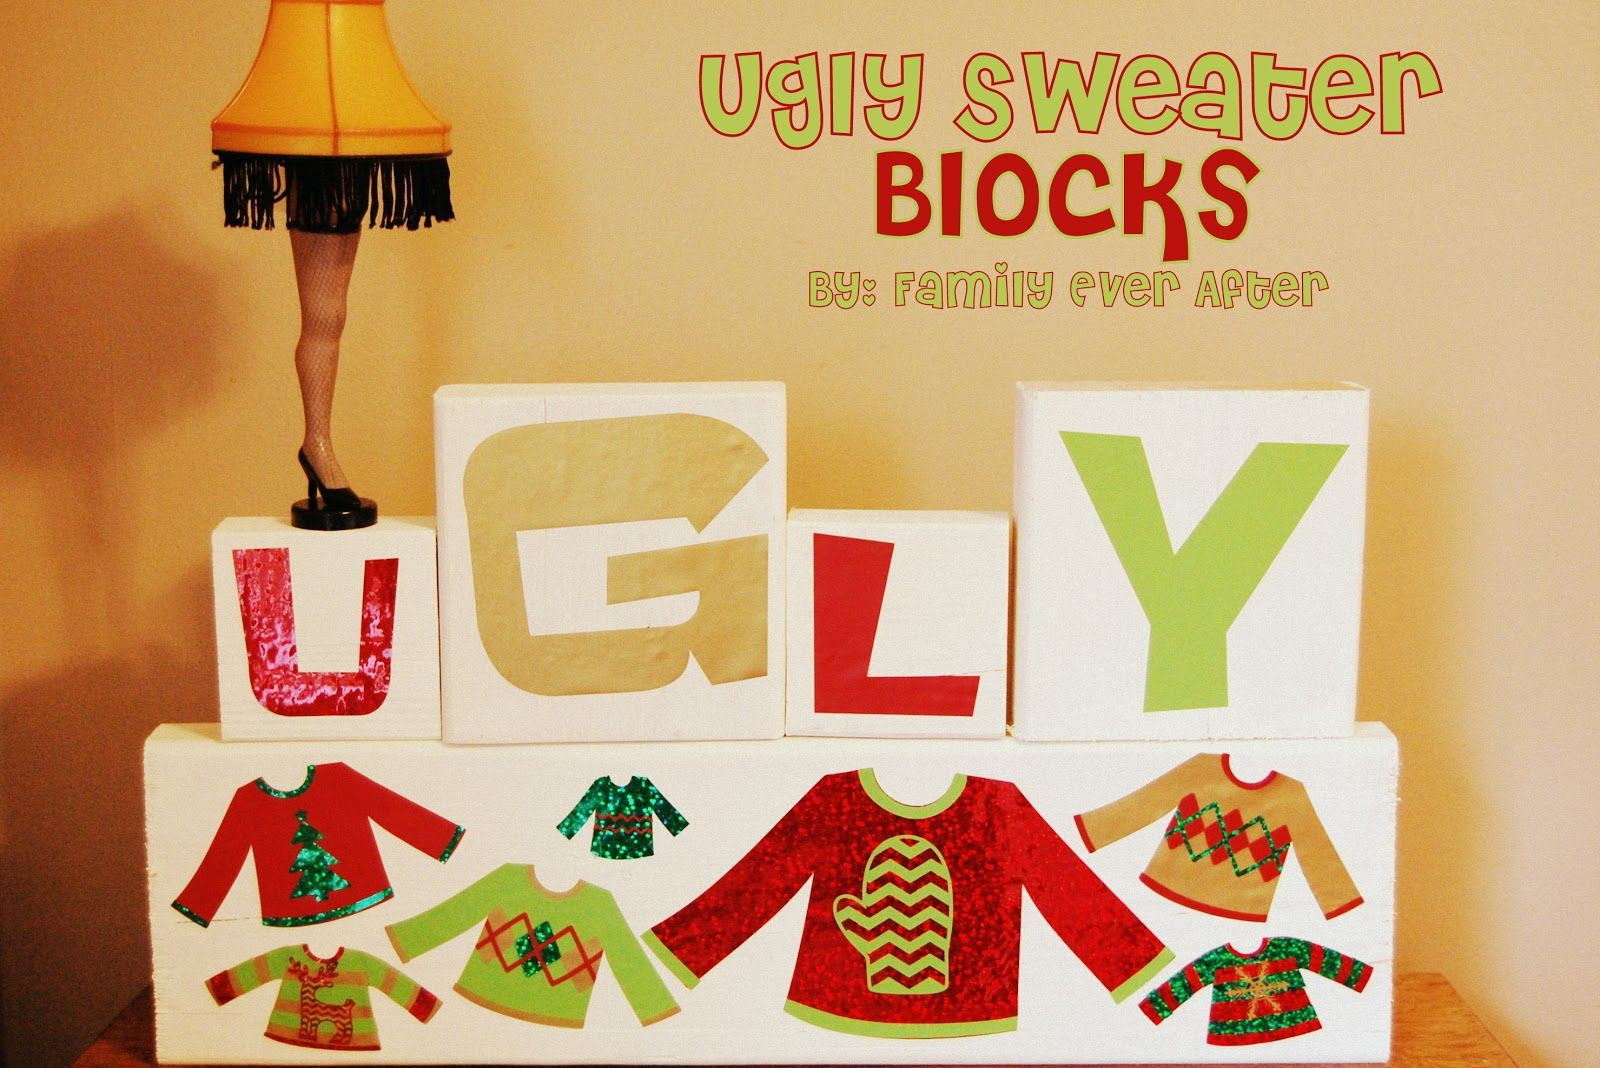 Tacky Sweater Christmas Party Ideas Part - 47: Ugly Sweater Party Ideas | Family Ever After....: {Ugly Christmas